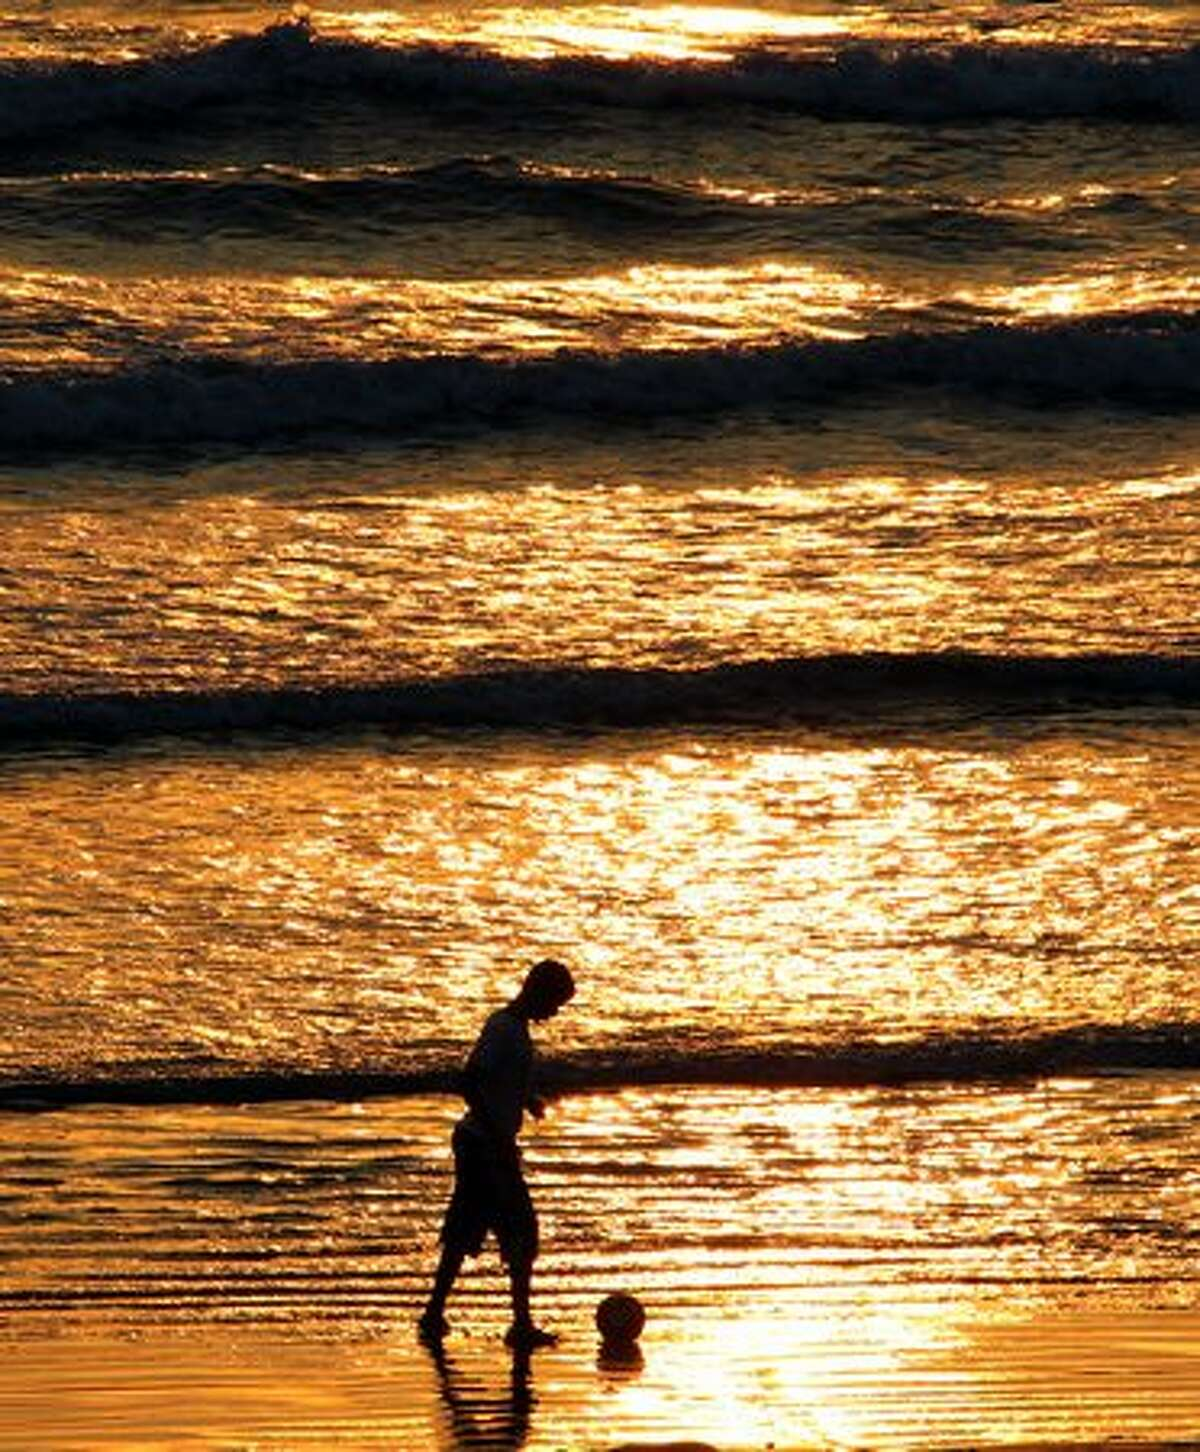 A Yemeni boy plays with a ball on the beach as the sun sets over the southern Yemeni city of Aden on December 3.